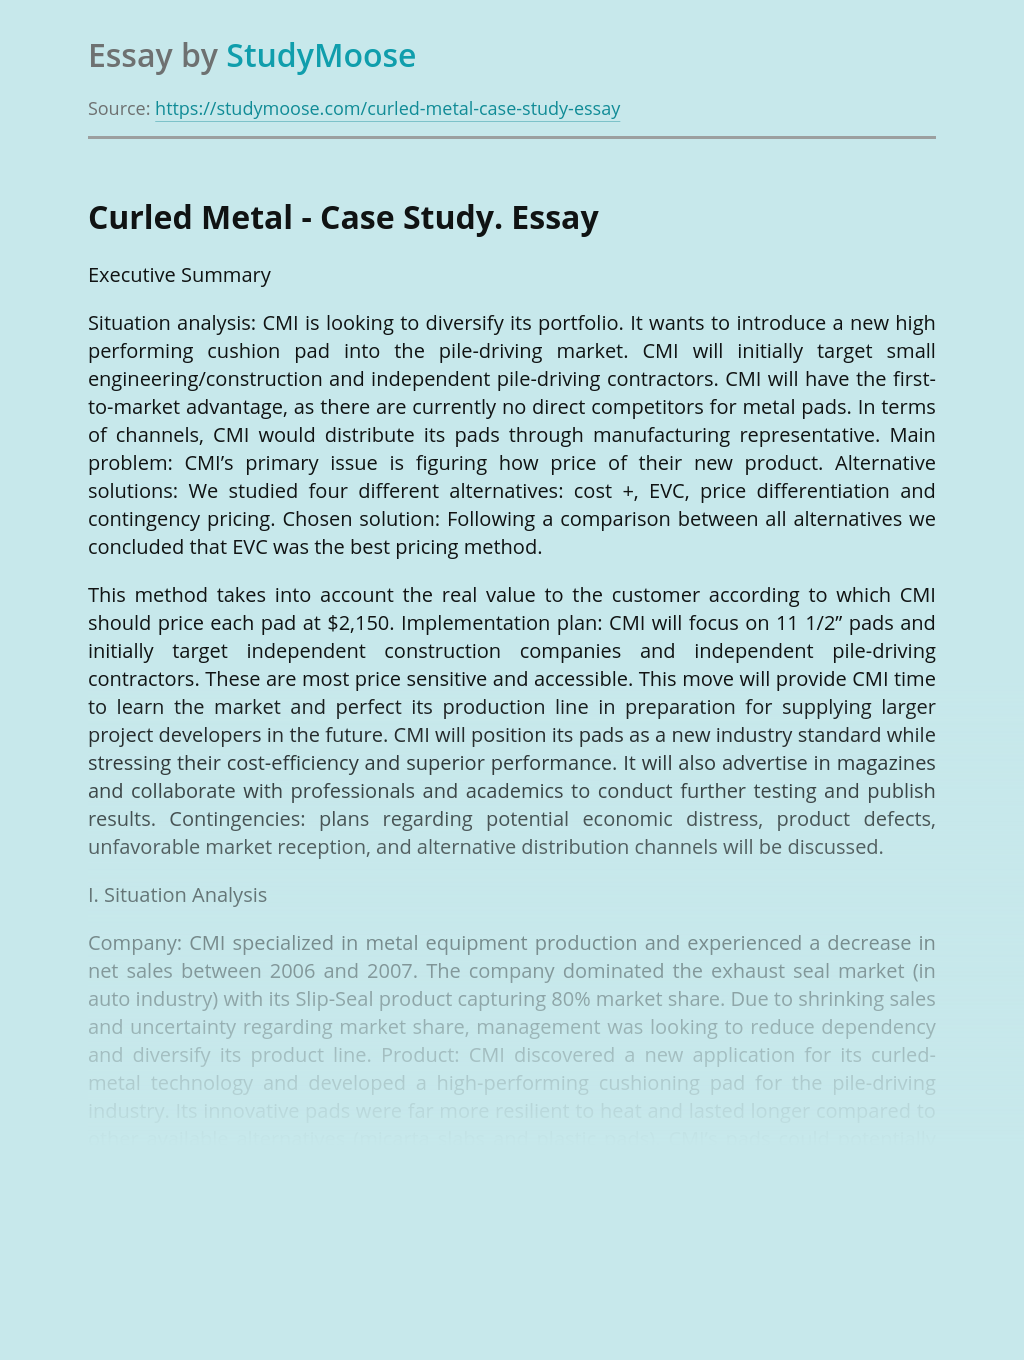 Curled Metal - Case Study.